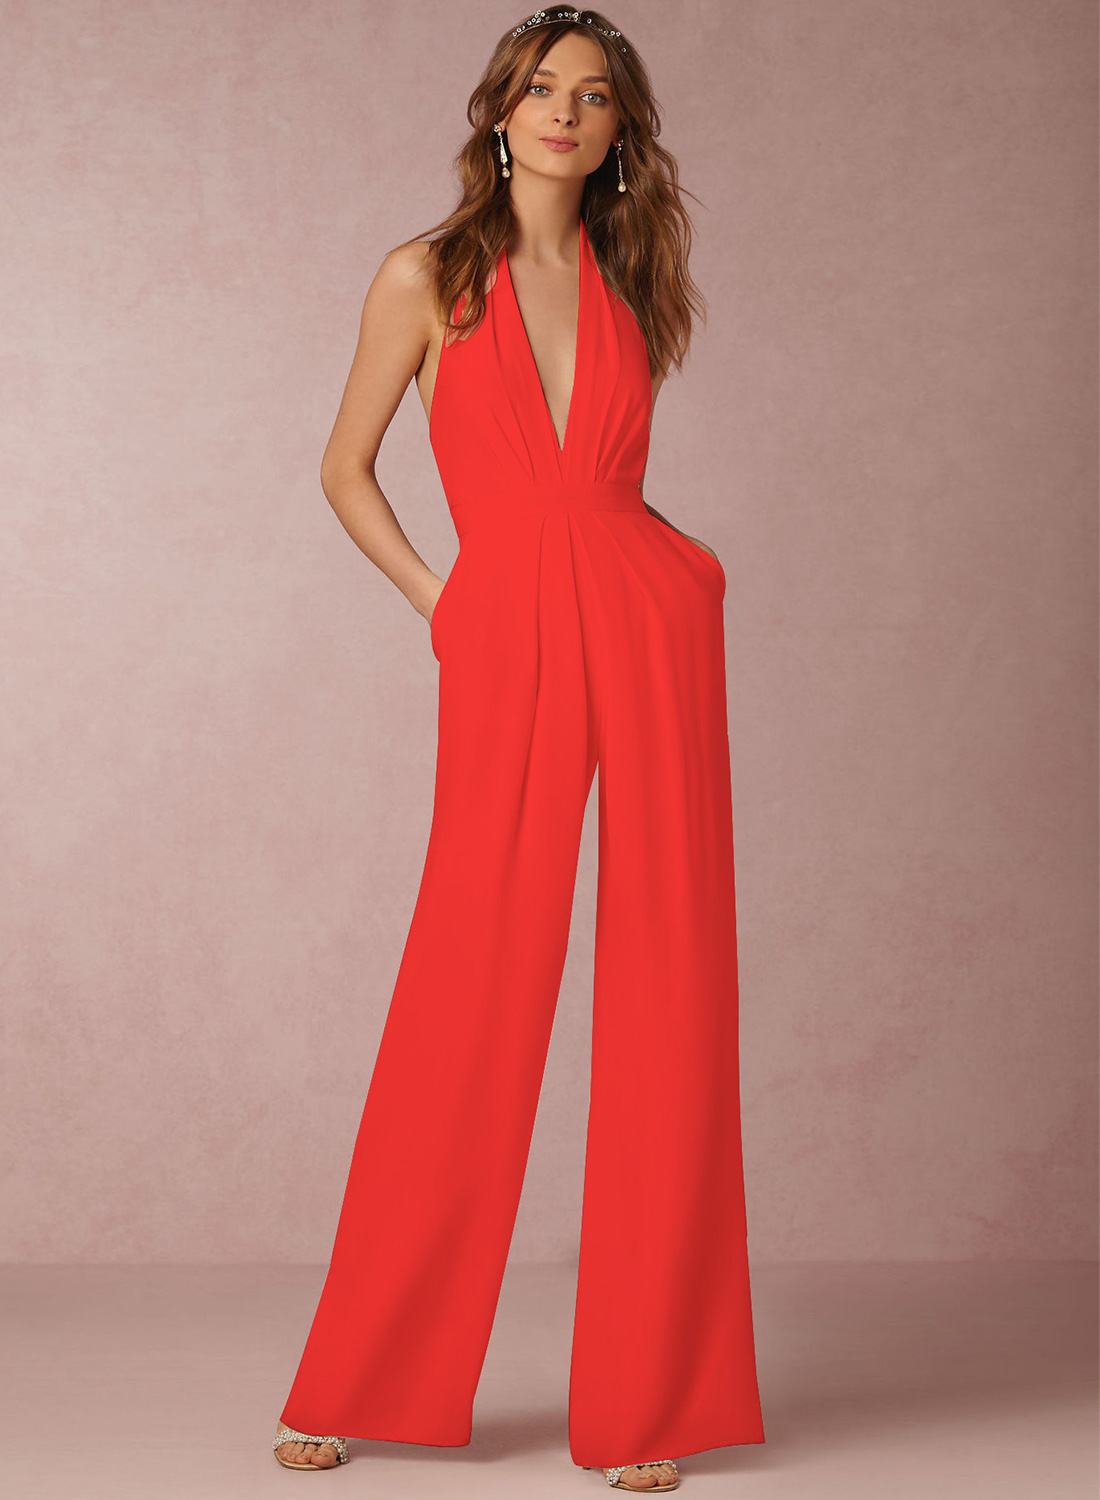 afcfc9cdece Fashion Halter V Neck Backless Wide-Leg Jumpsuit STYLESIMO.com. Loading zoom